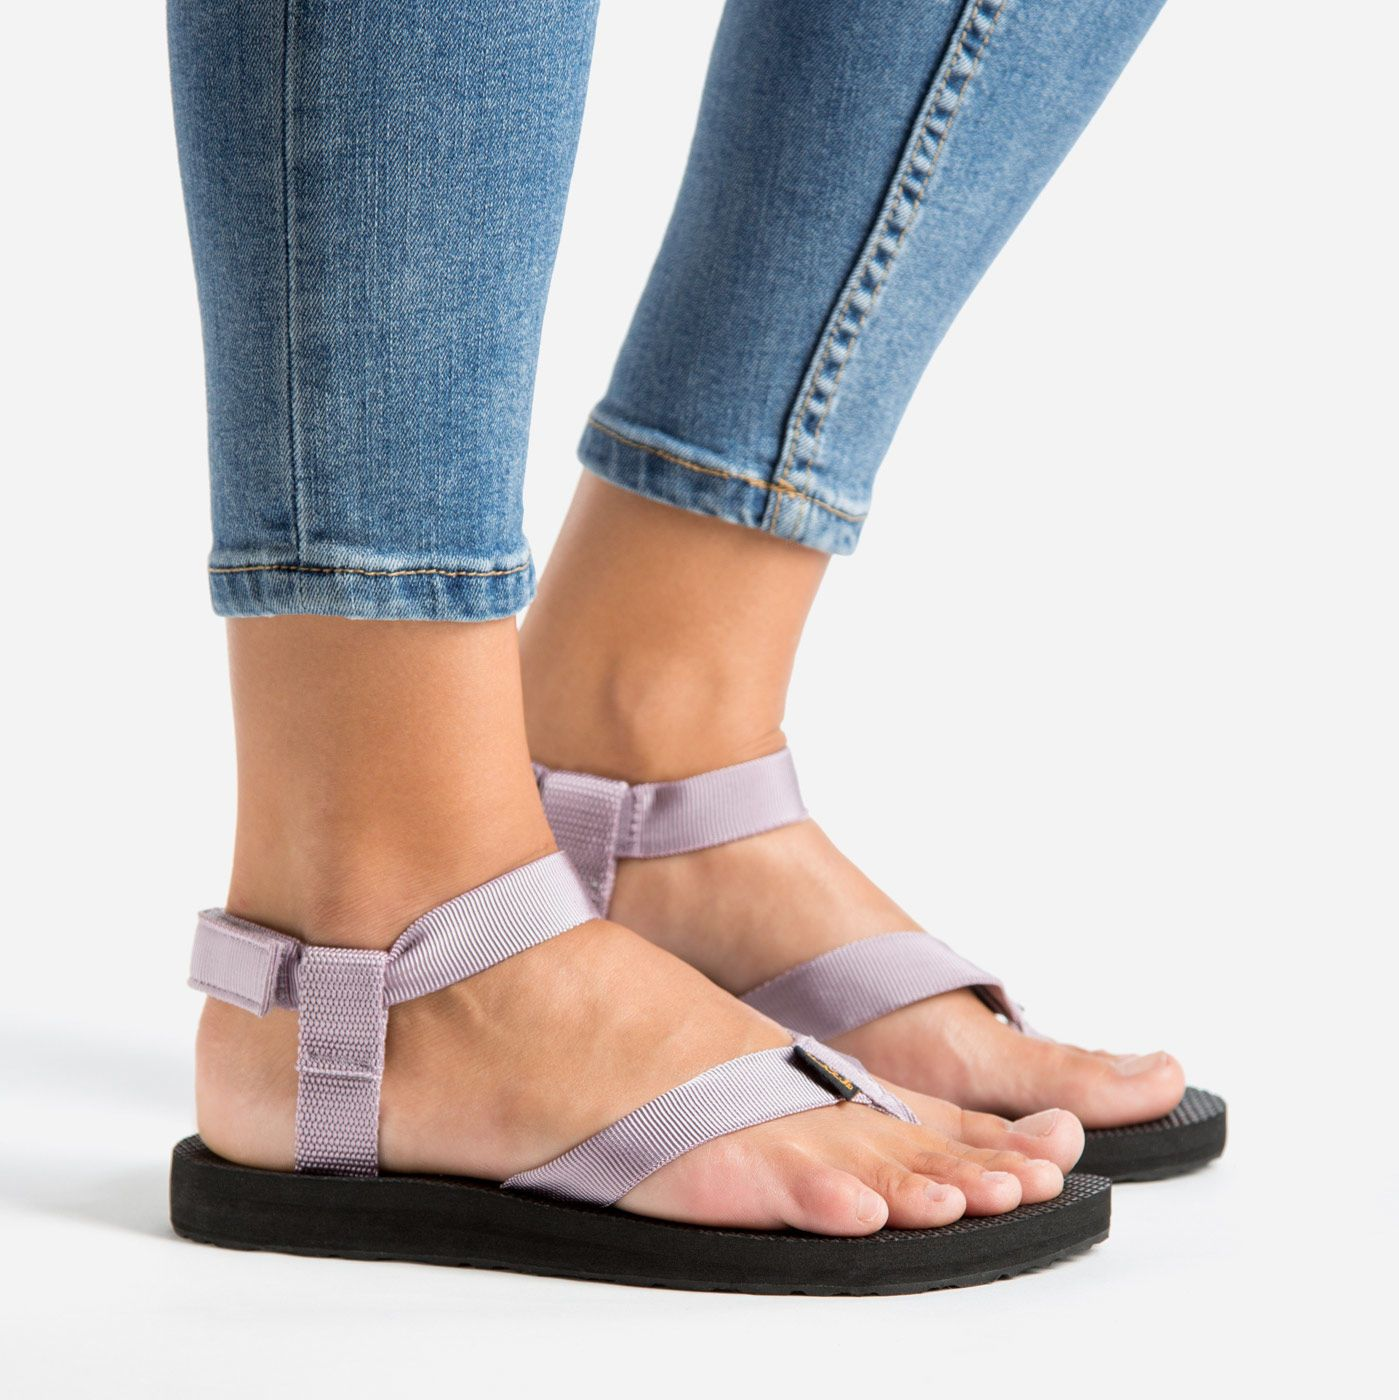 85c331d35c6de7 Free Shipping   Free Returns on Authentic Teva® Women s Sandals. Shop our  Collection of Sandals for Women including the Original Sandal at Teva.com